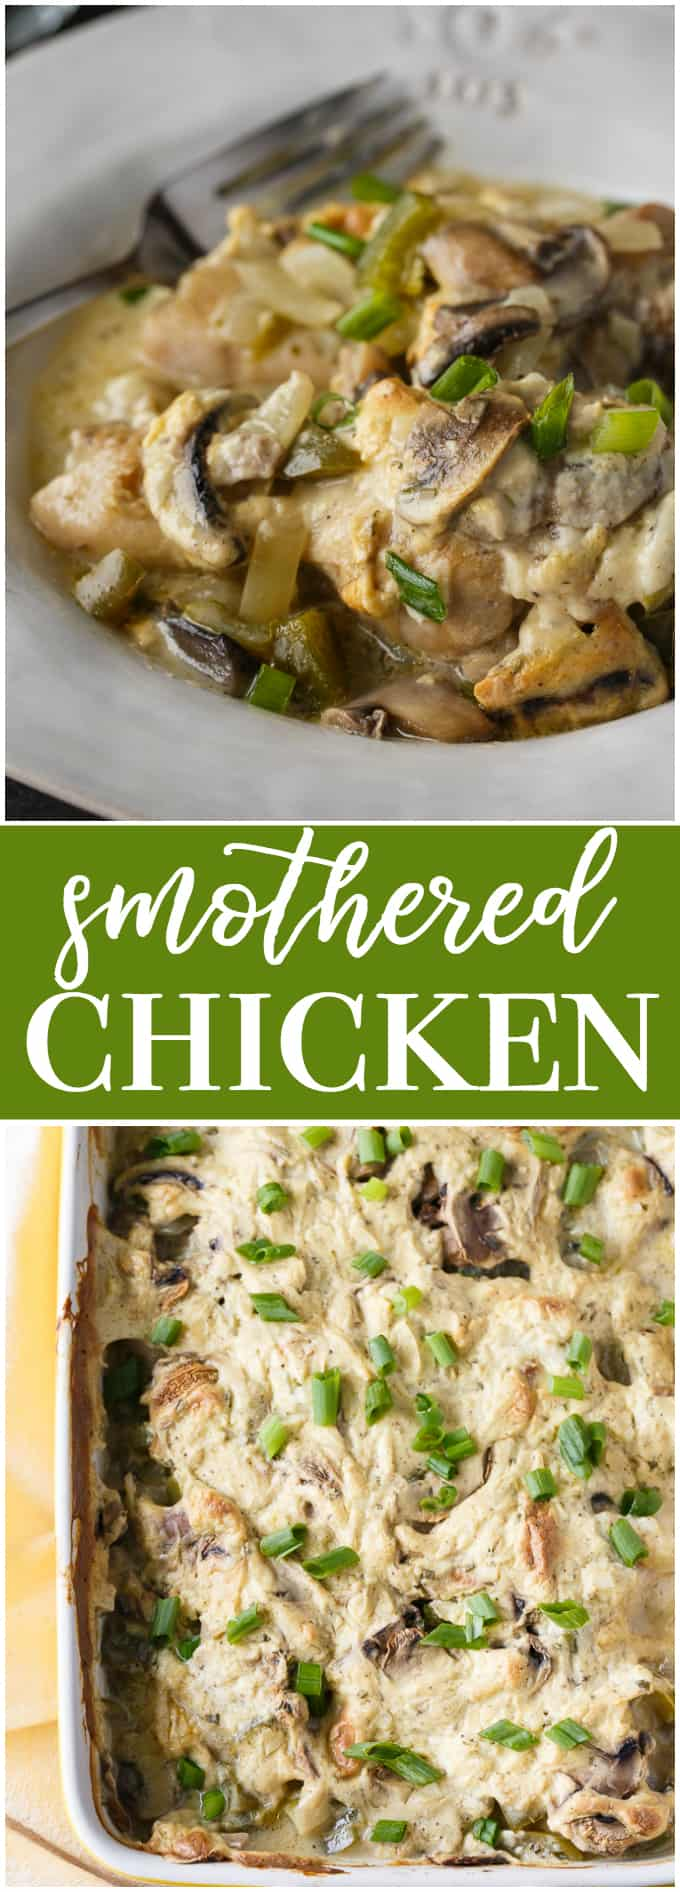 Smothered Chicken - Cozy, comfort food perfect to enjoy in the frosty weather.